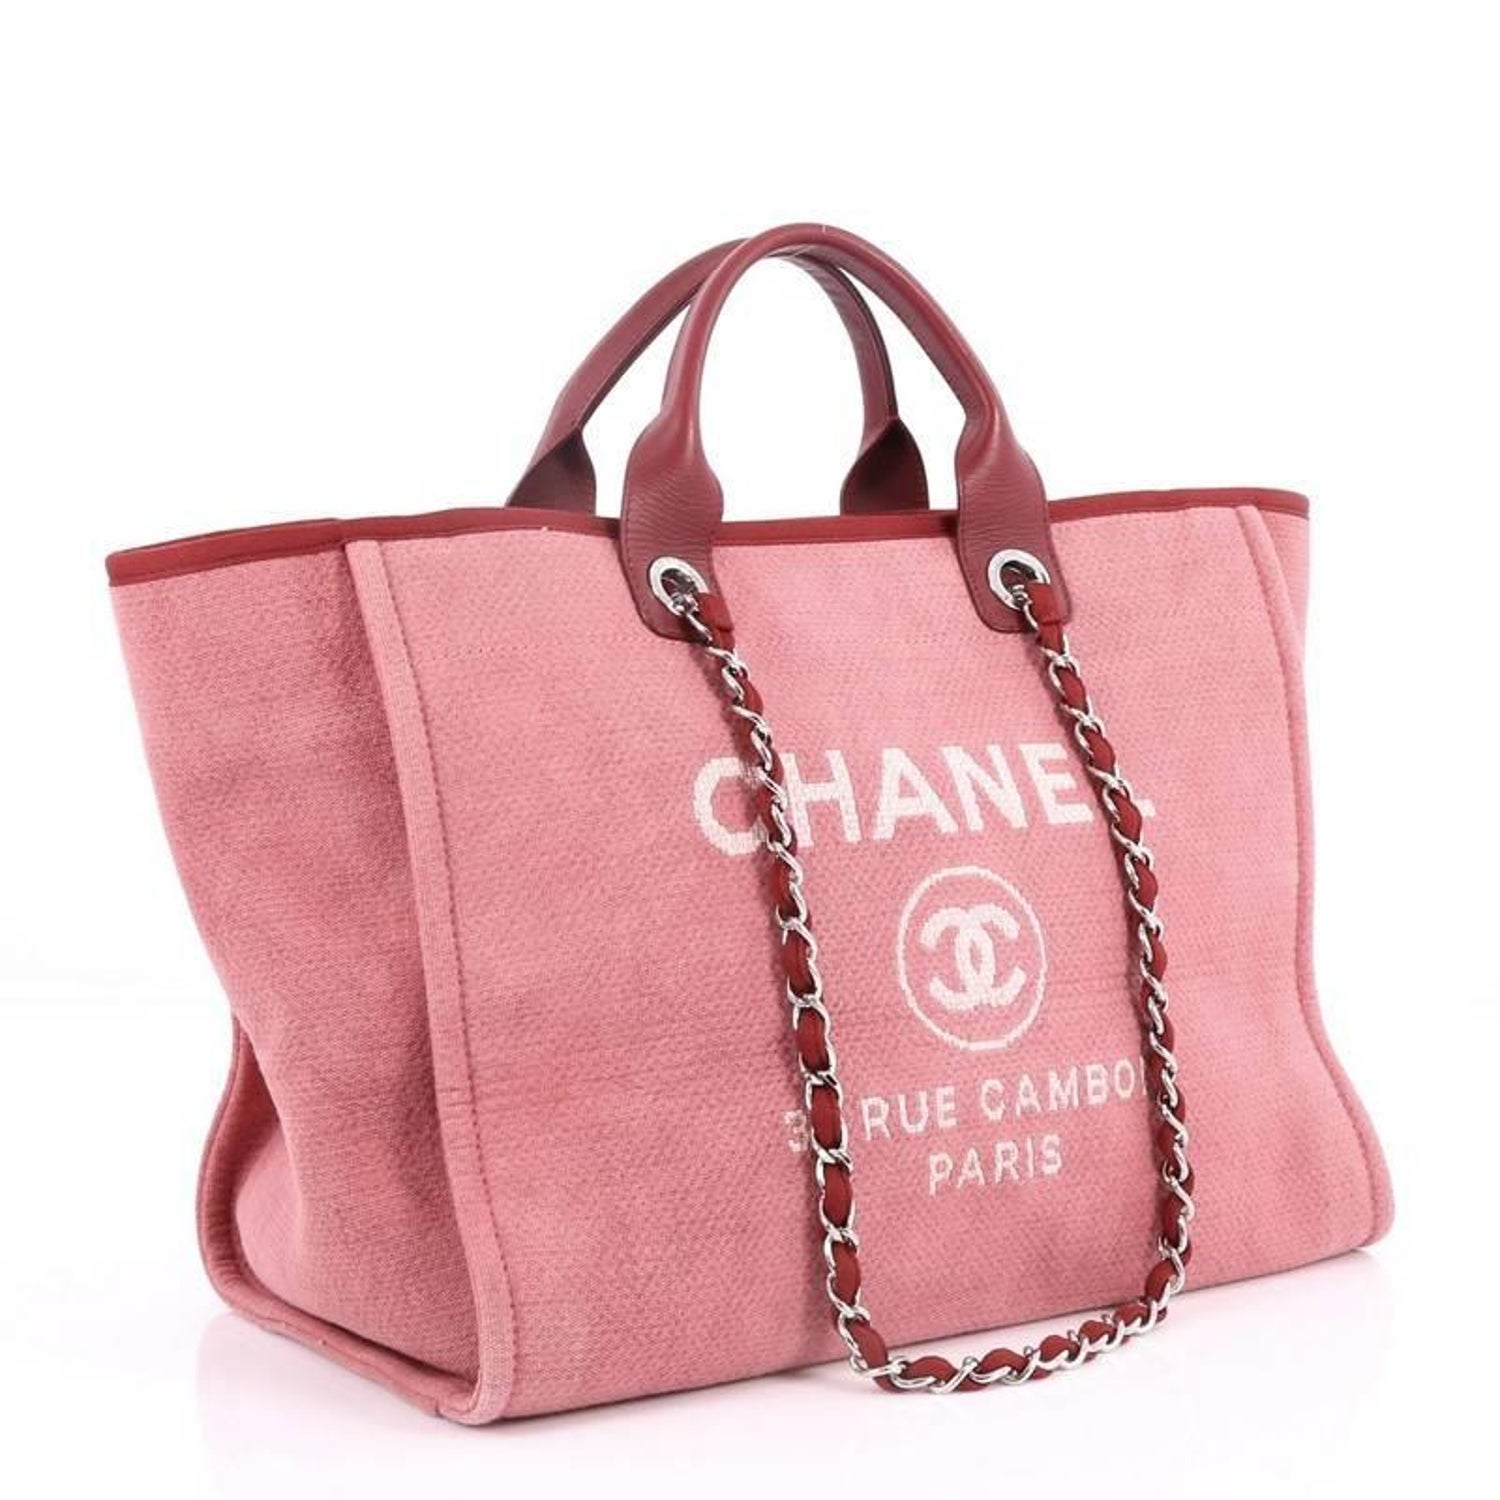 0dbc4537322c Chanel Deauville Chain Tote Canvas Large at 1stdibs